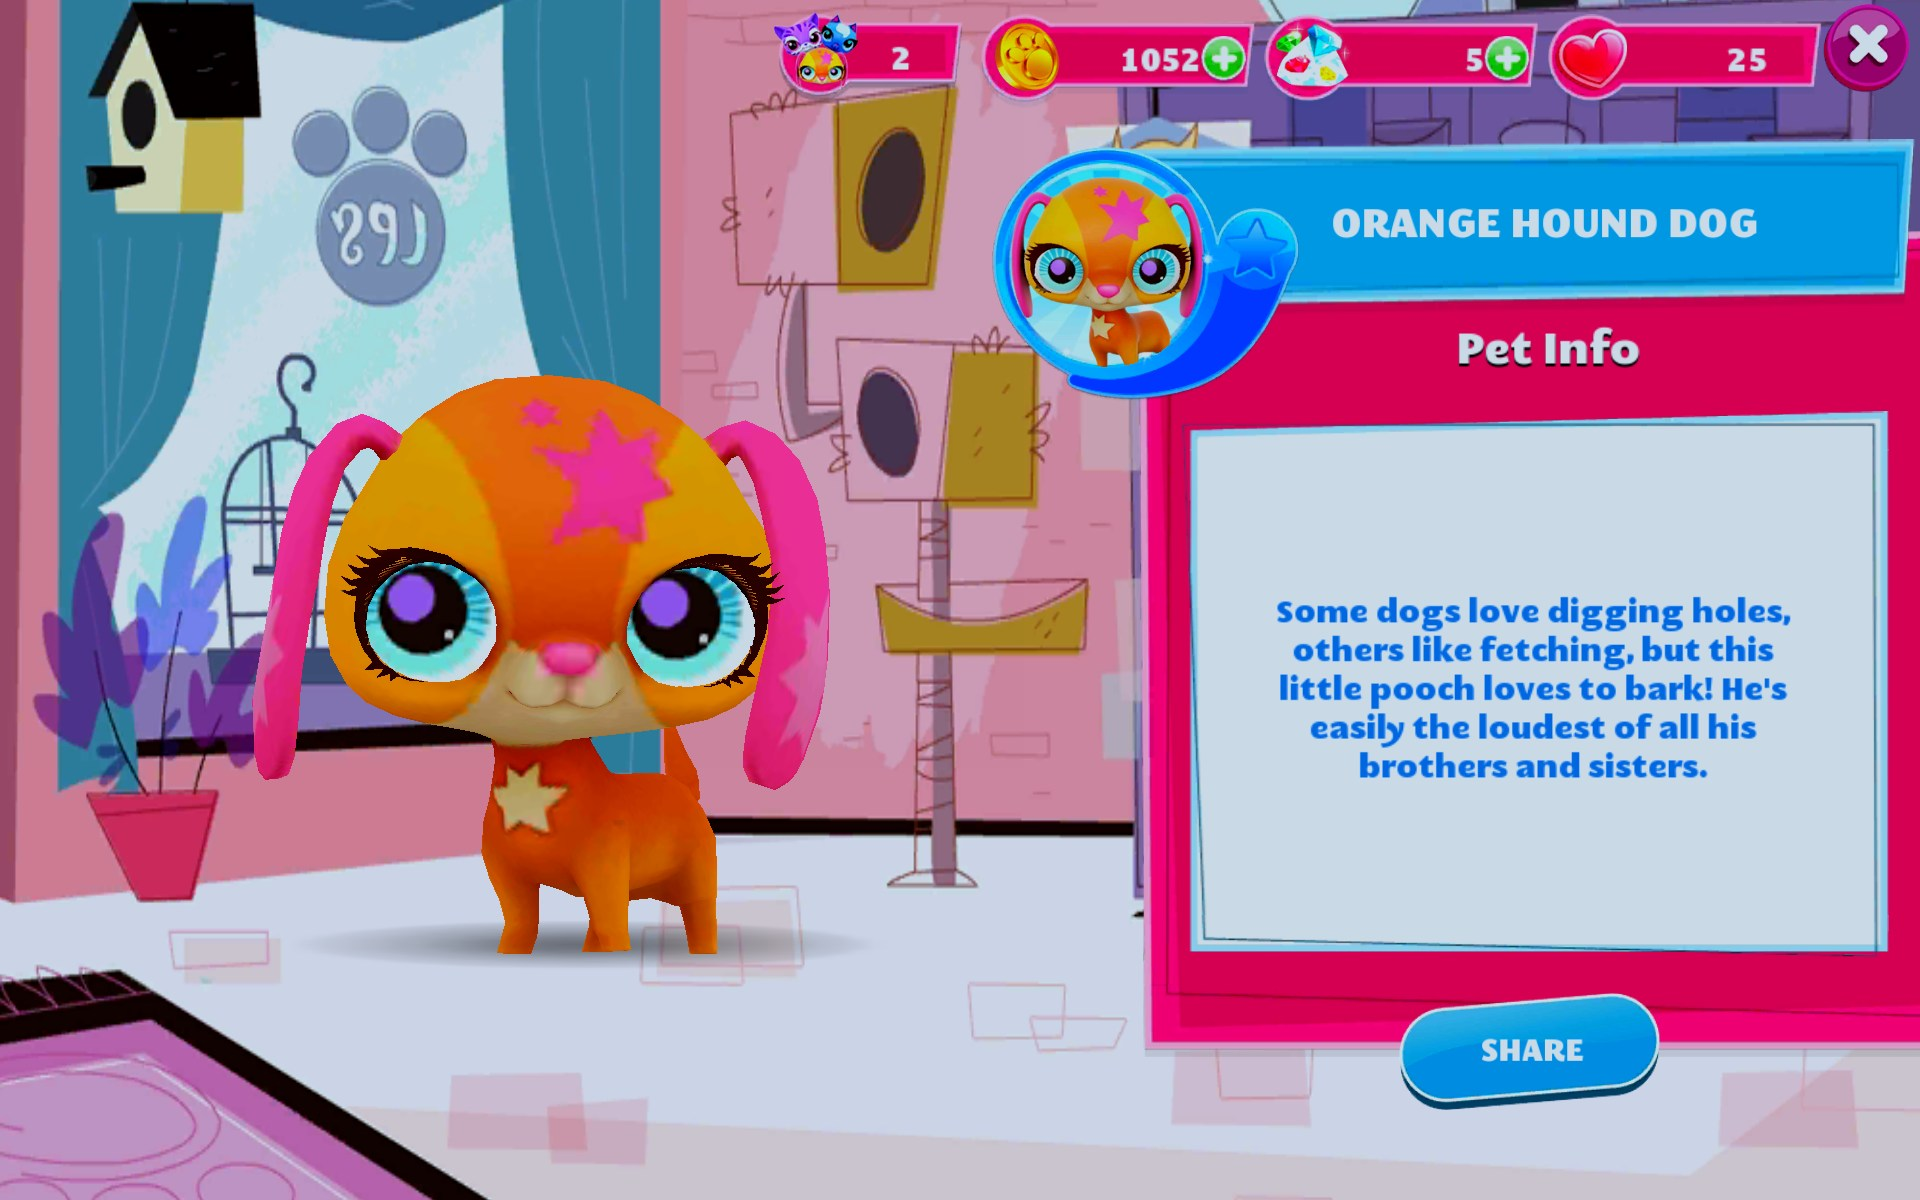 Littlest pet shop game app - How much is chicken alfredo at